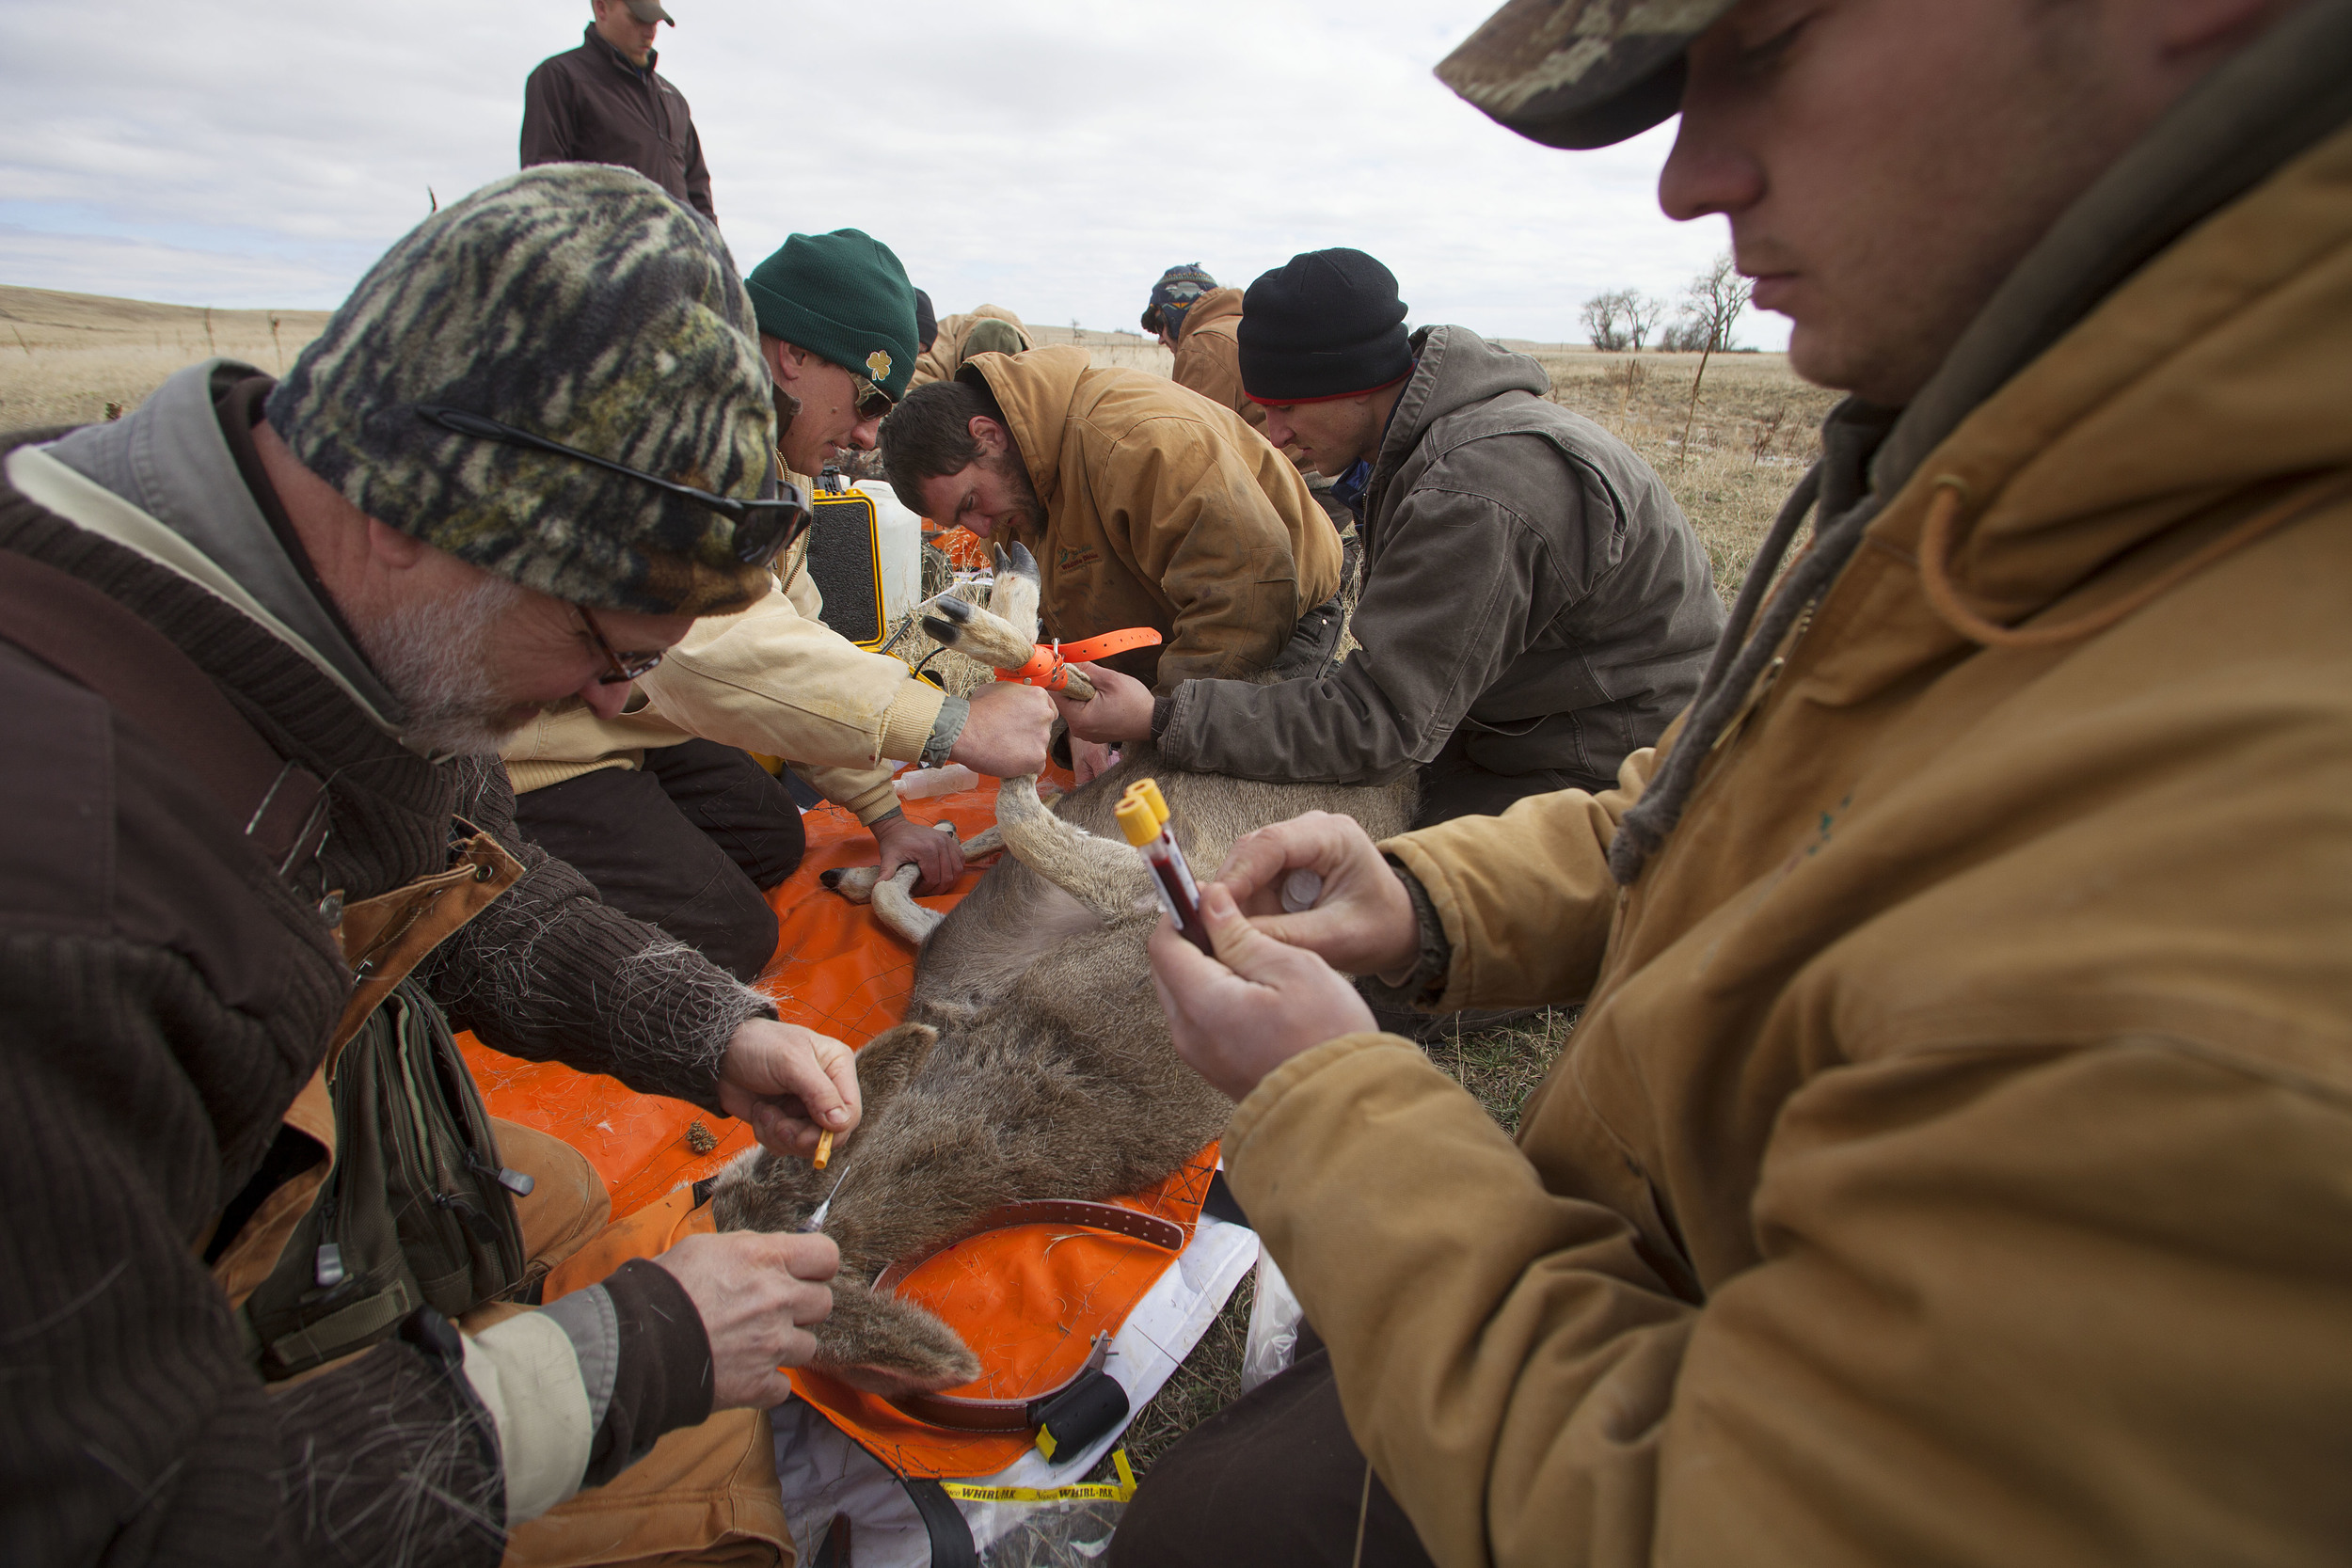 The ground team works quickly to take blood samples, apply radio collars, pregnancy check, and administer antibiotics to the sedated deer.